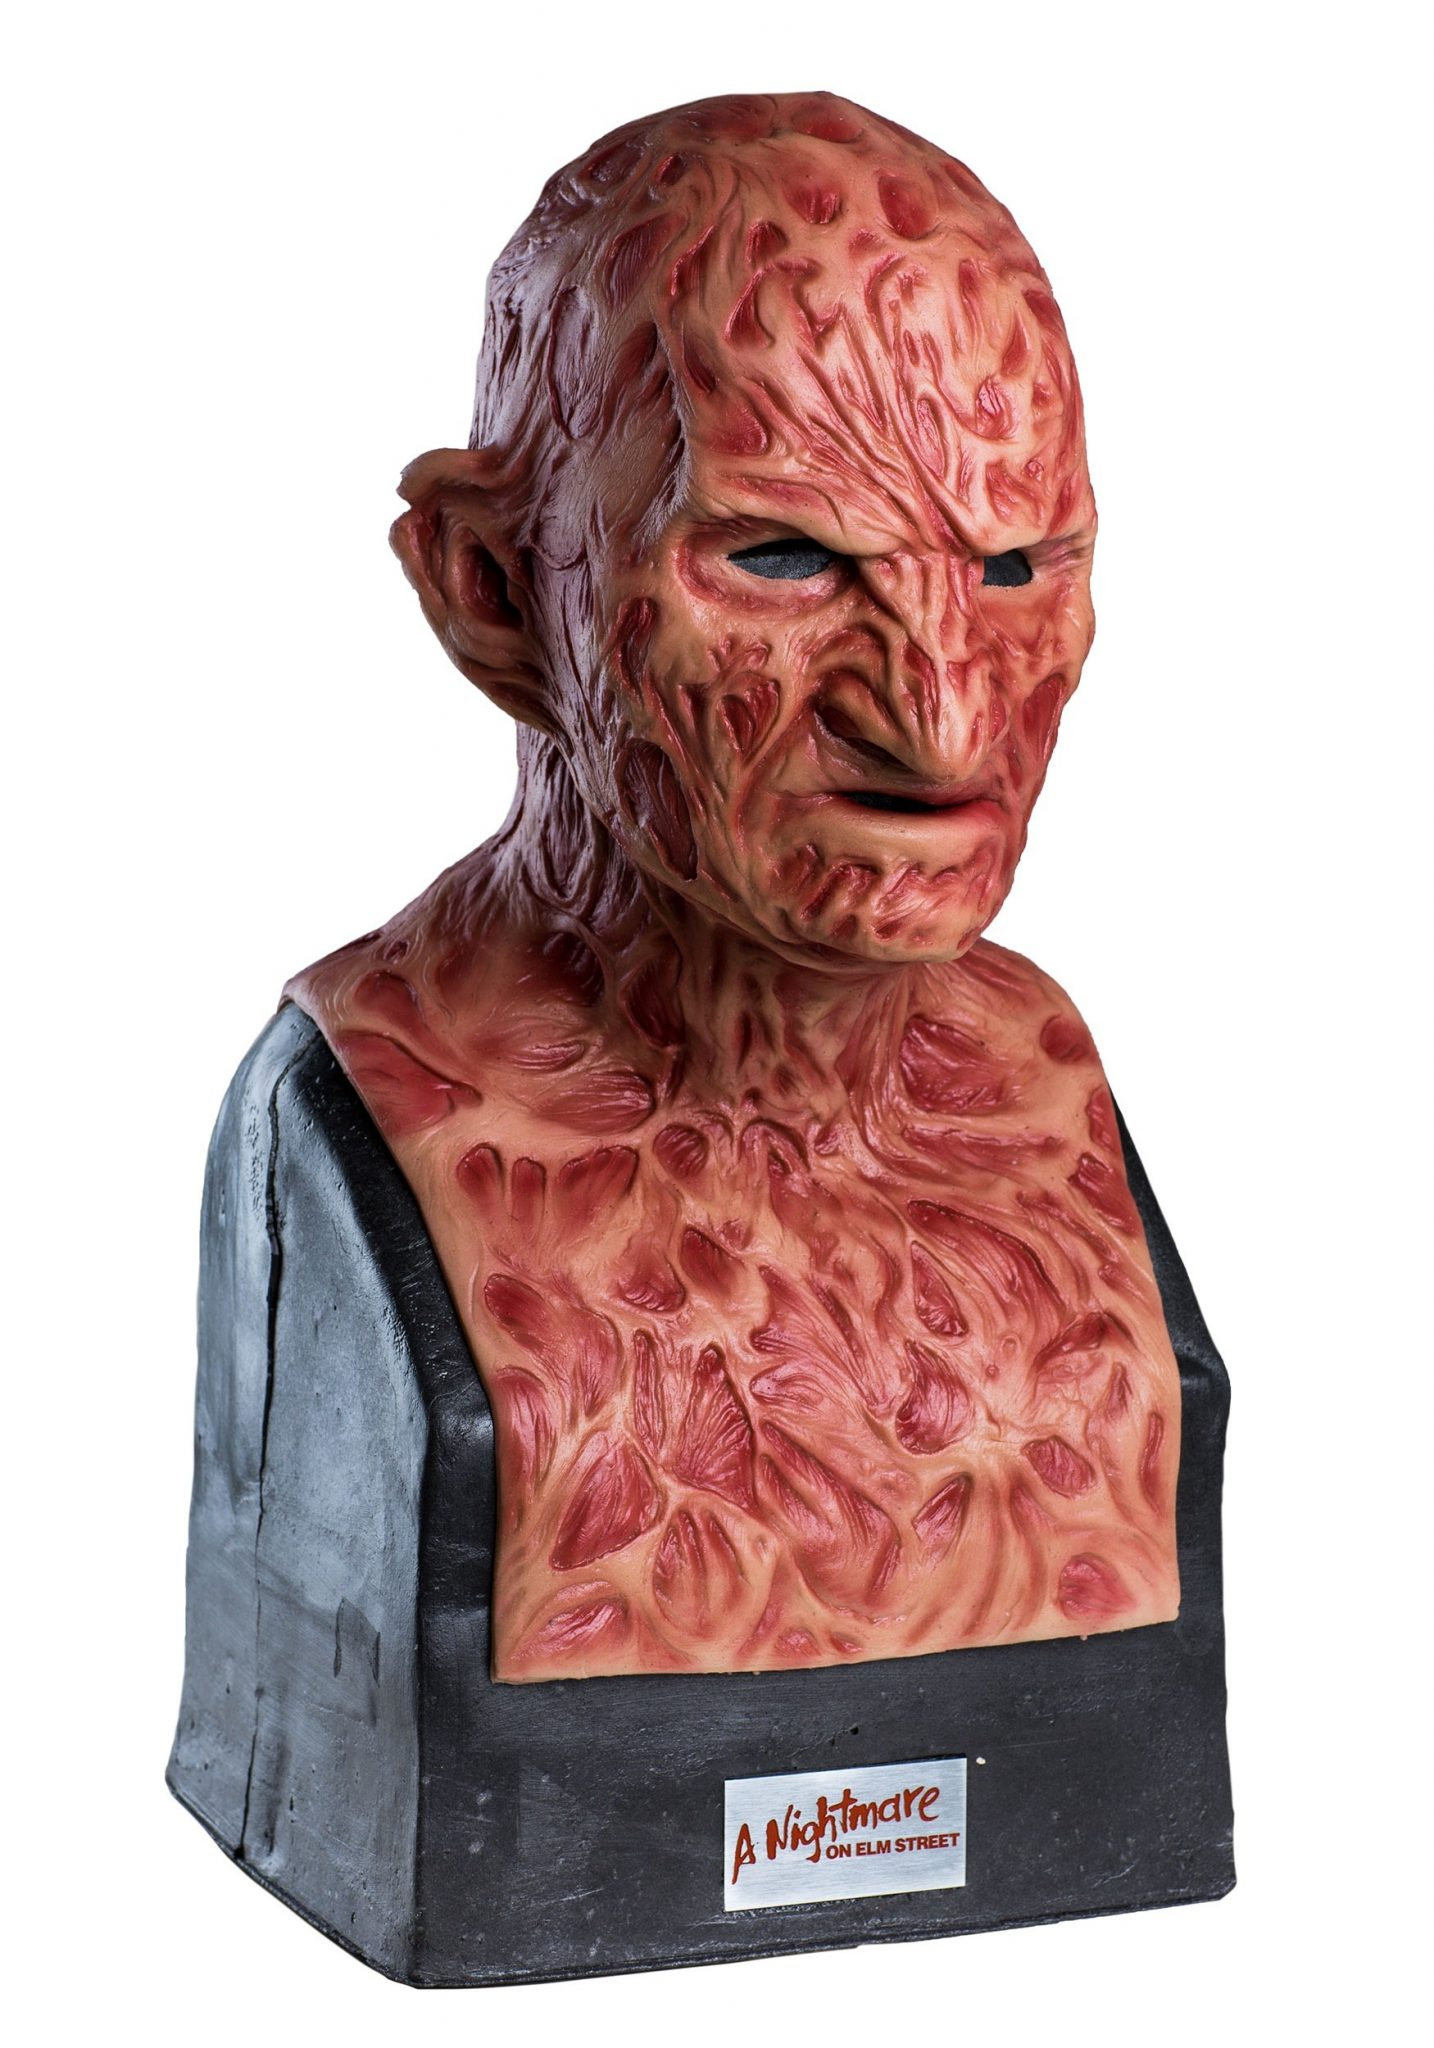 freddy krueger collectors mask - See The ULTIMATE Freddy Krueger Mask!